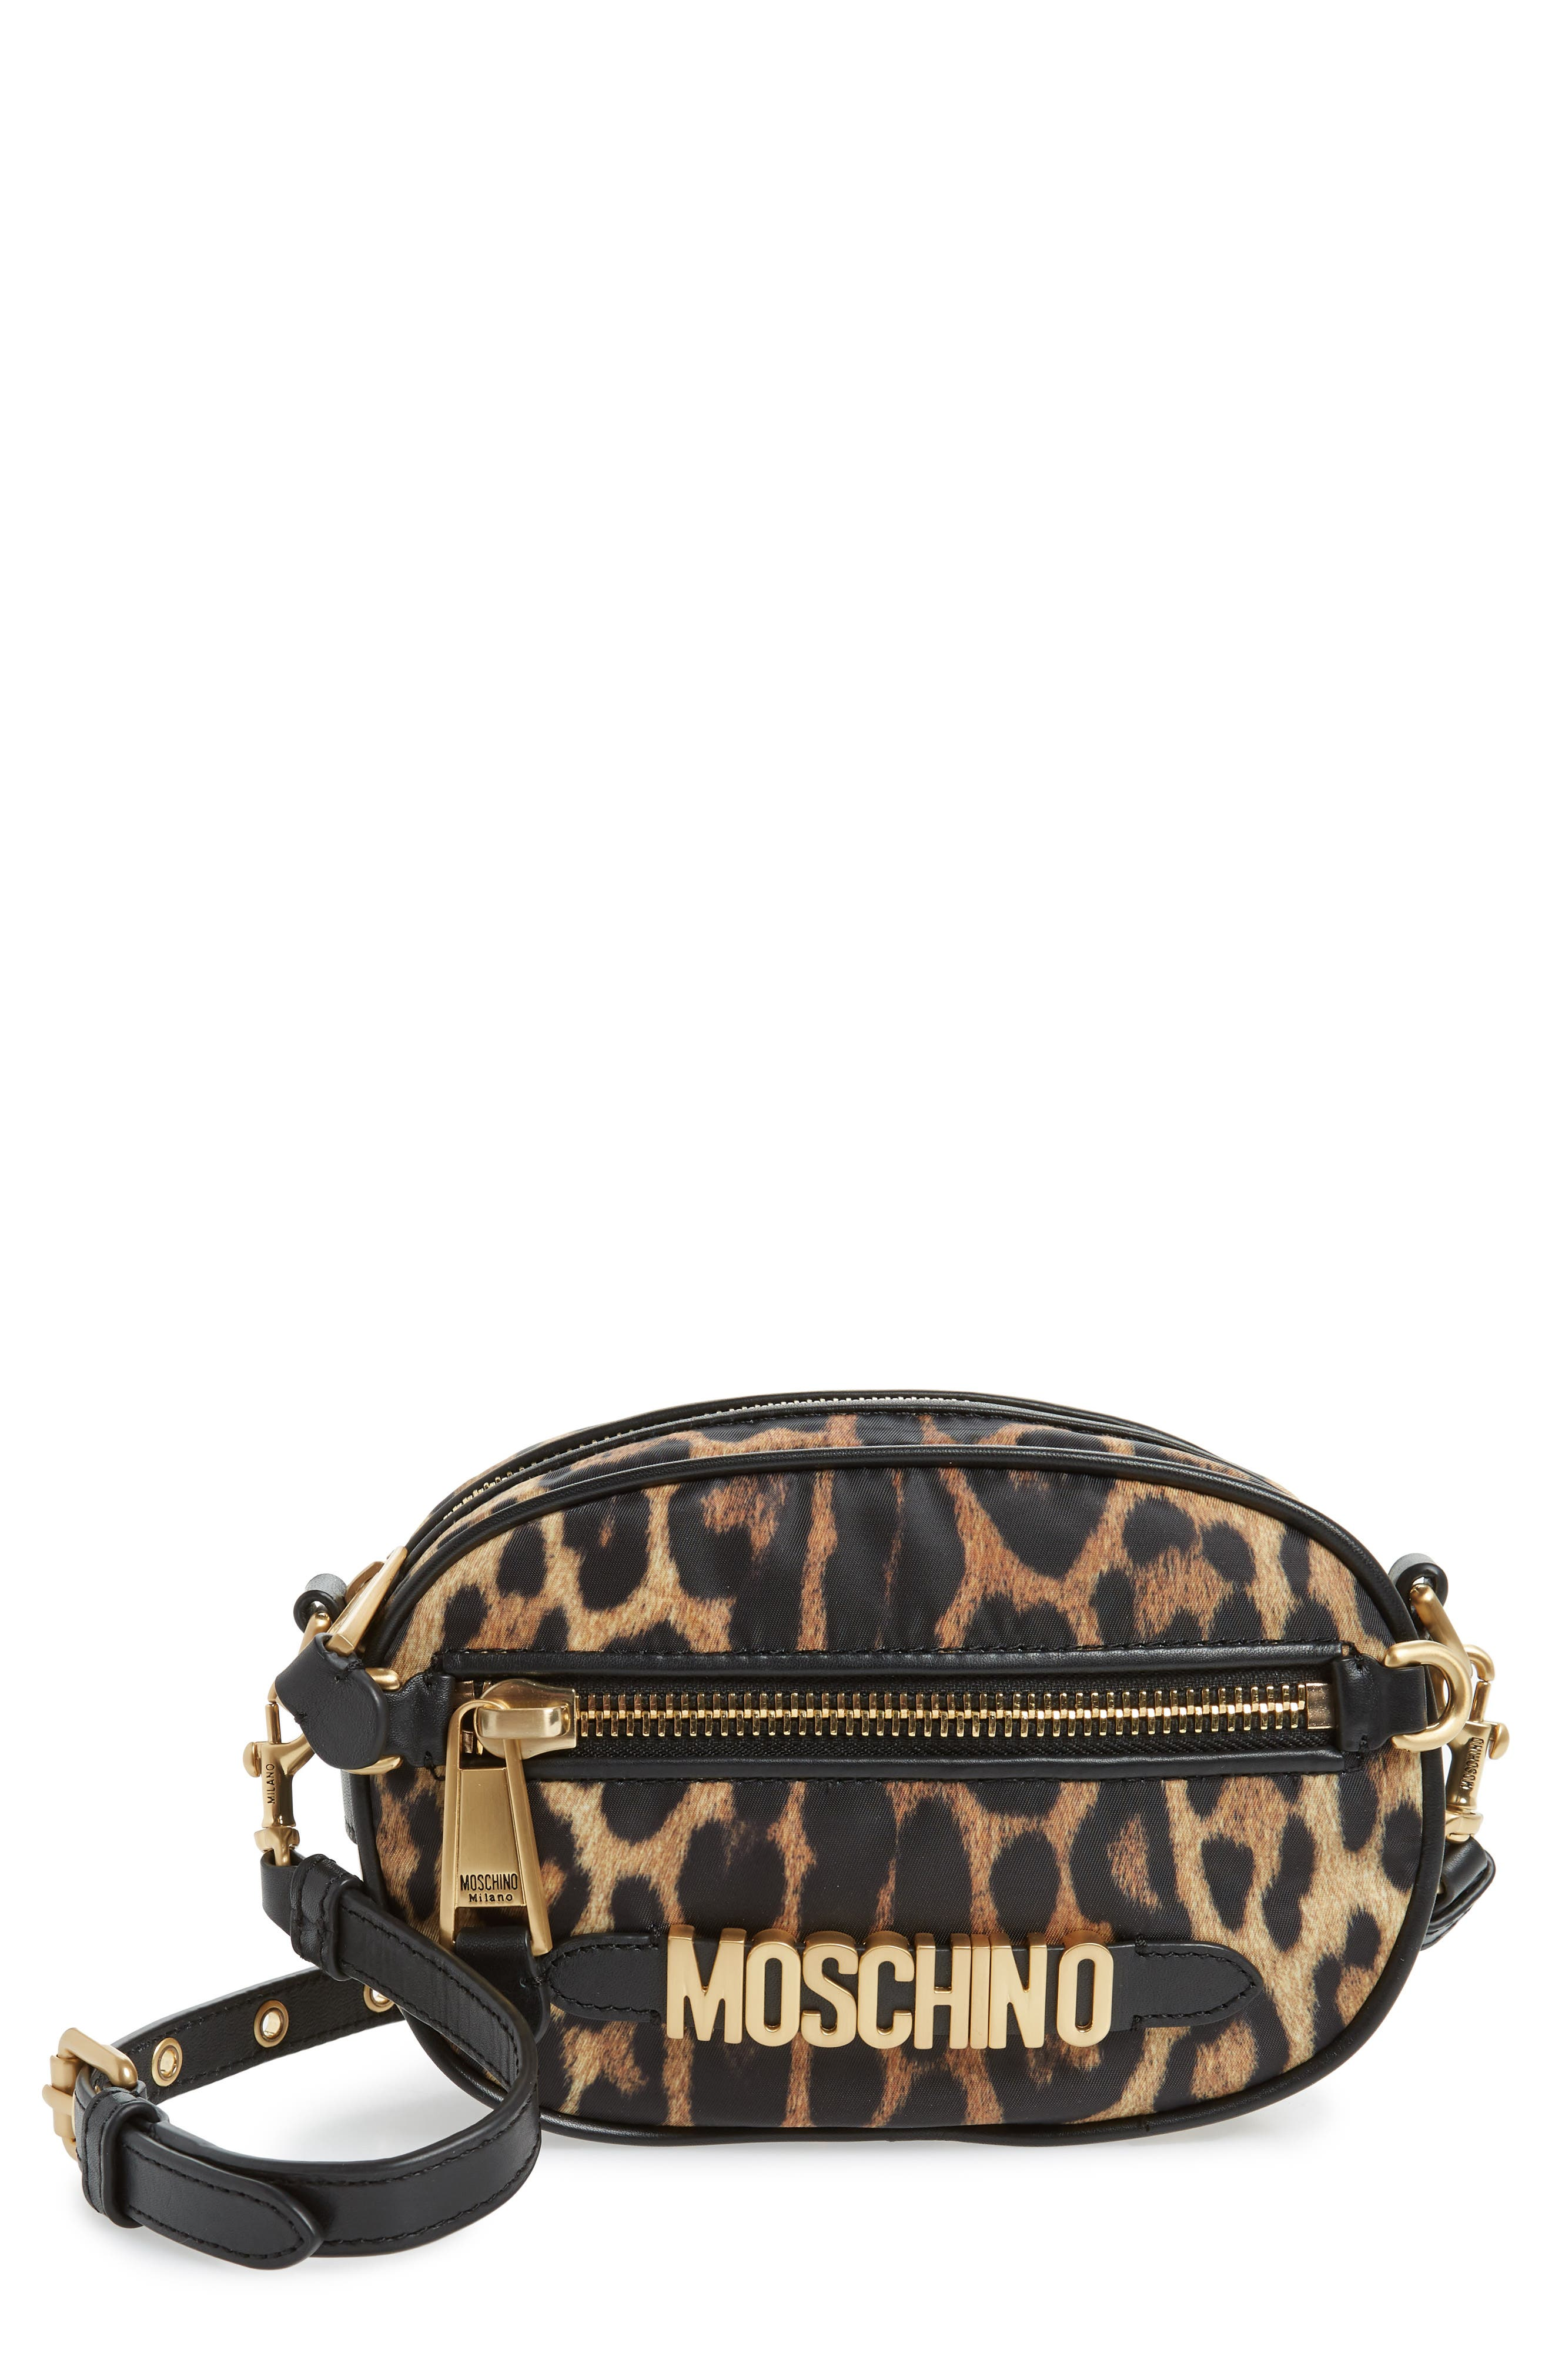 Moschino Women amp; Nordstrom Wallets Handbags For Wqwg08Awr